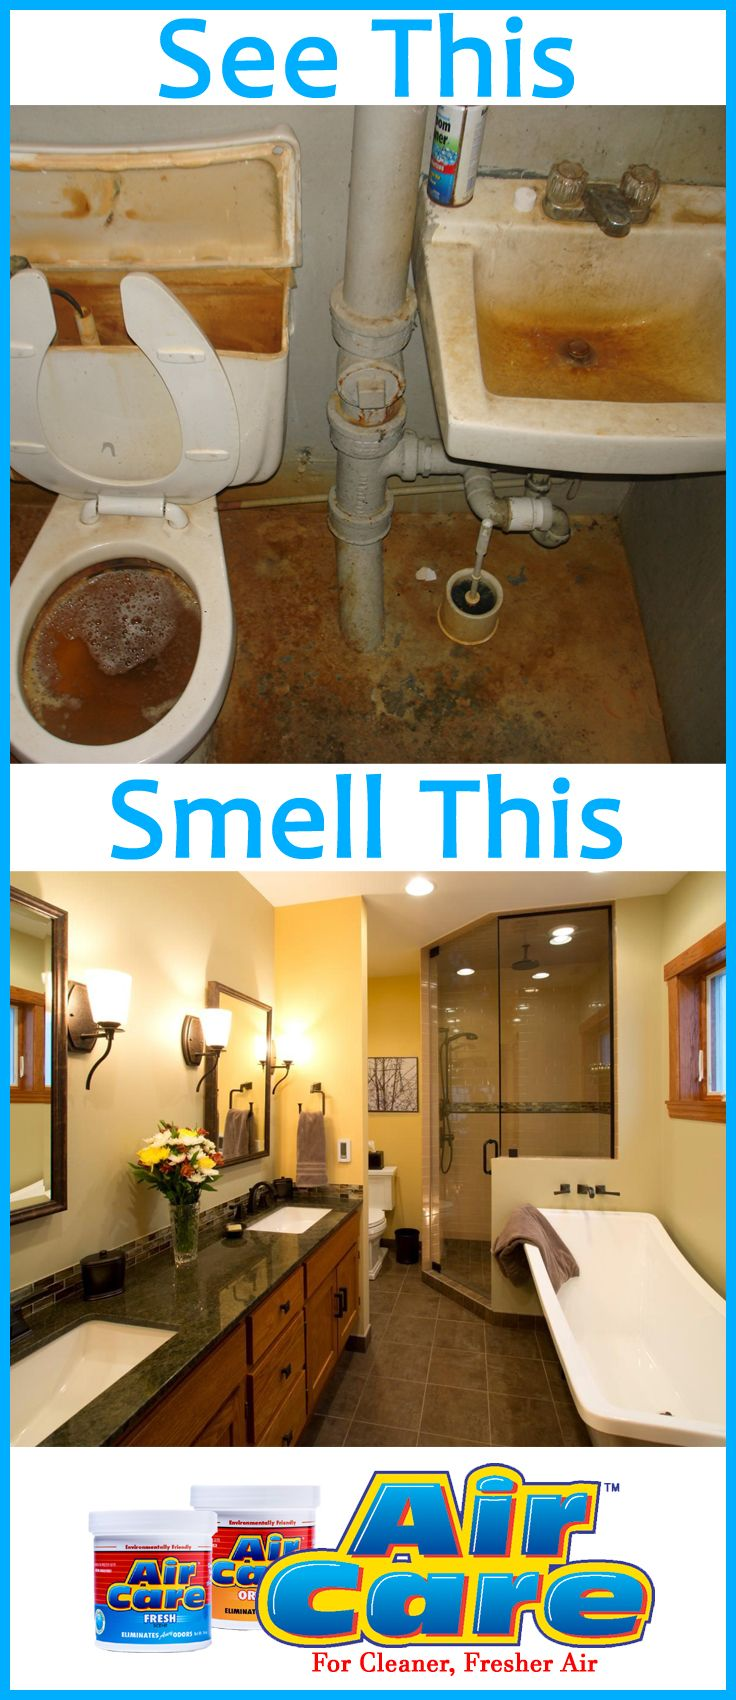 Don't let your bathroom smell like a rest stop! Place an